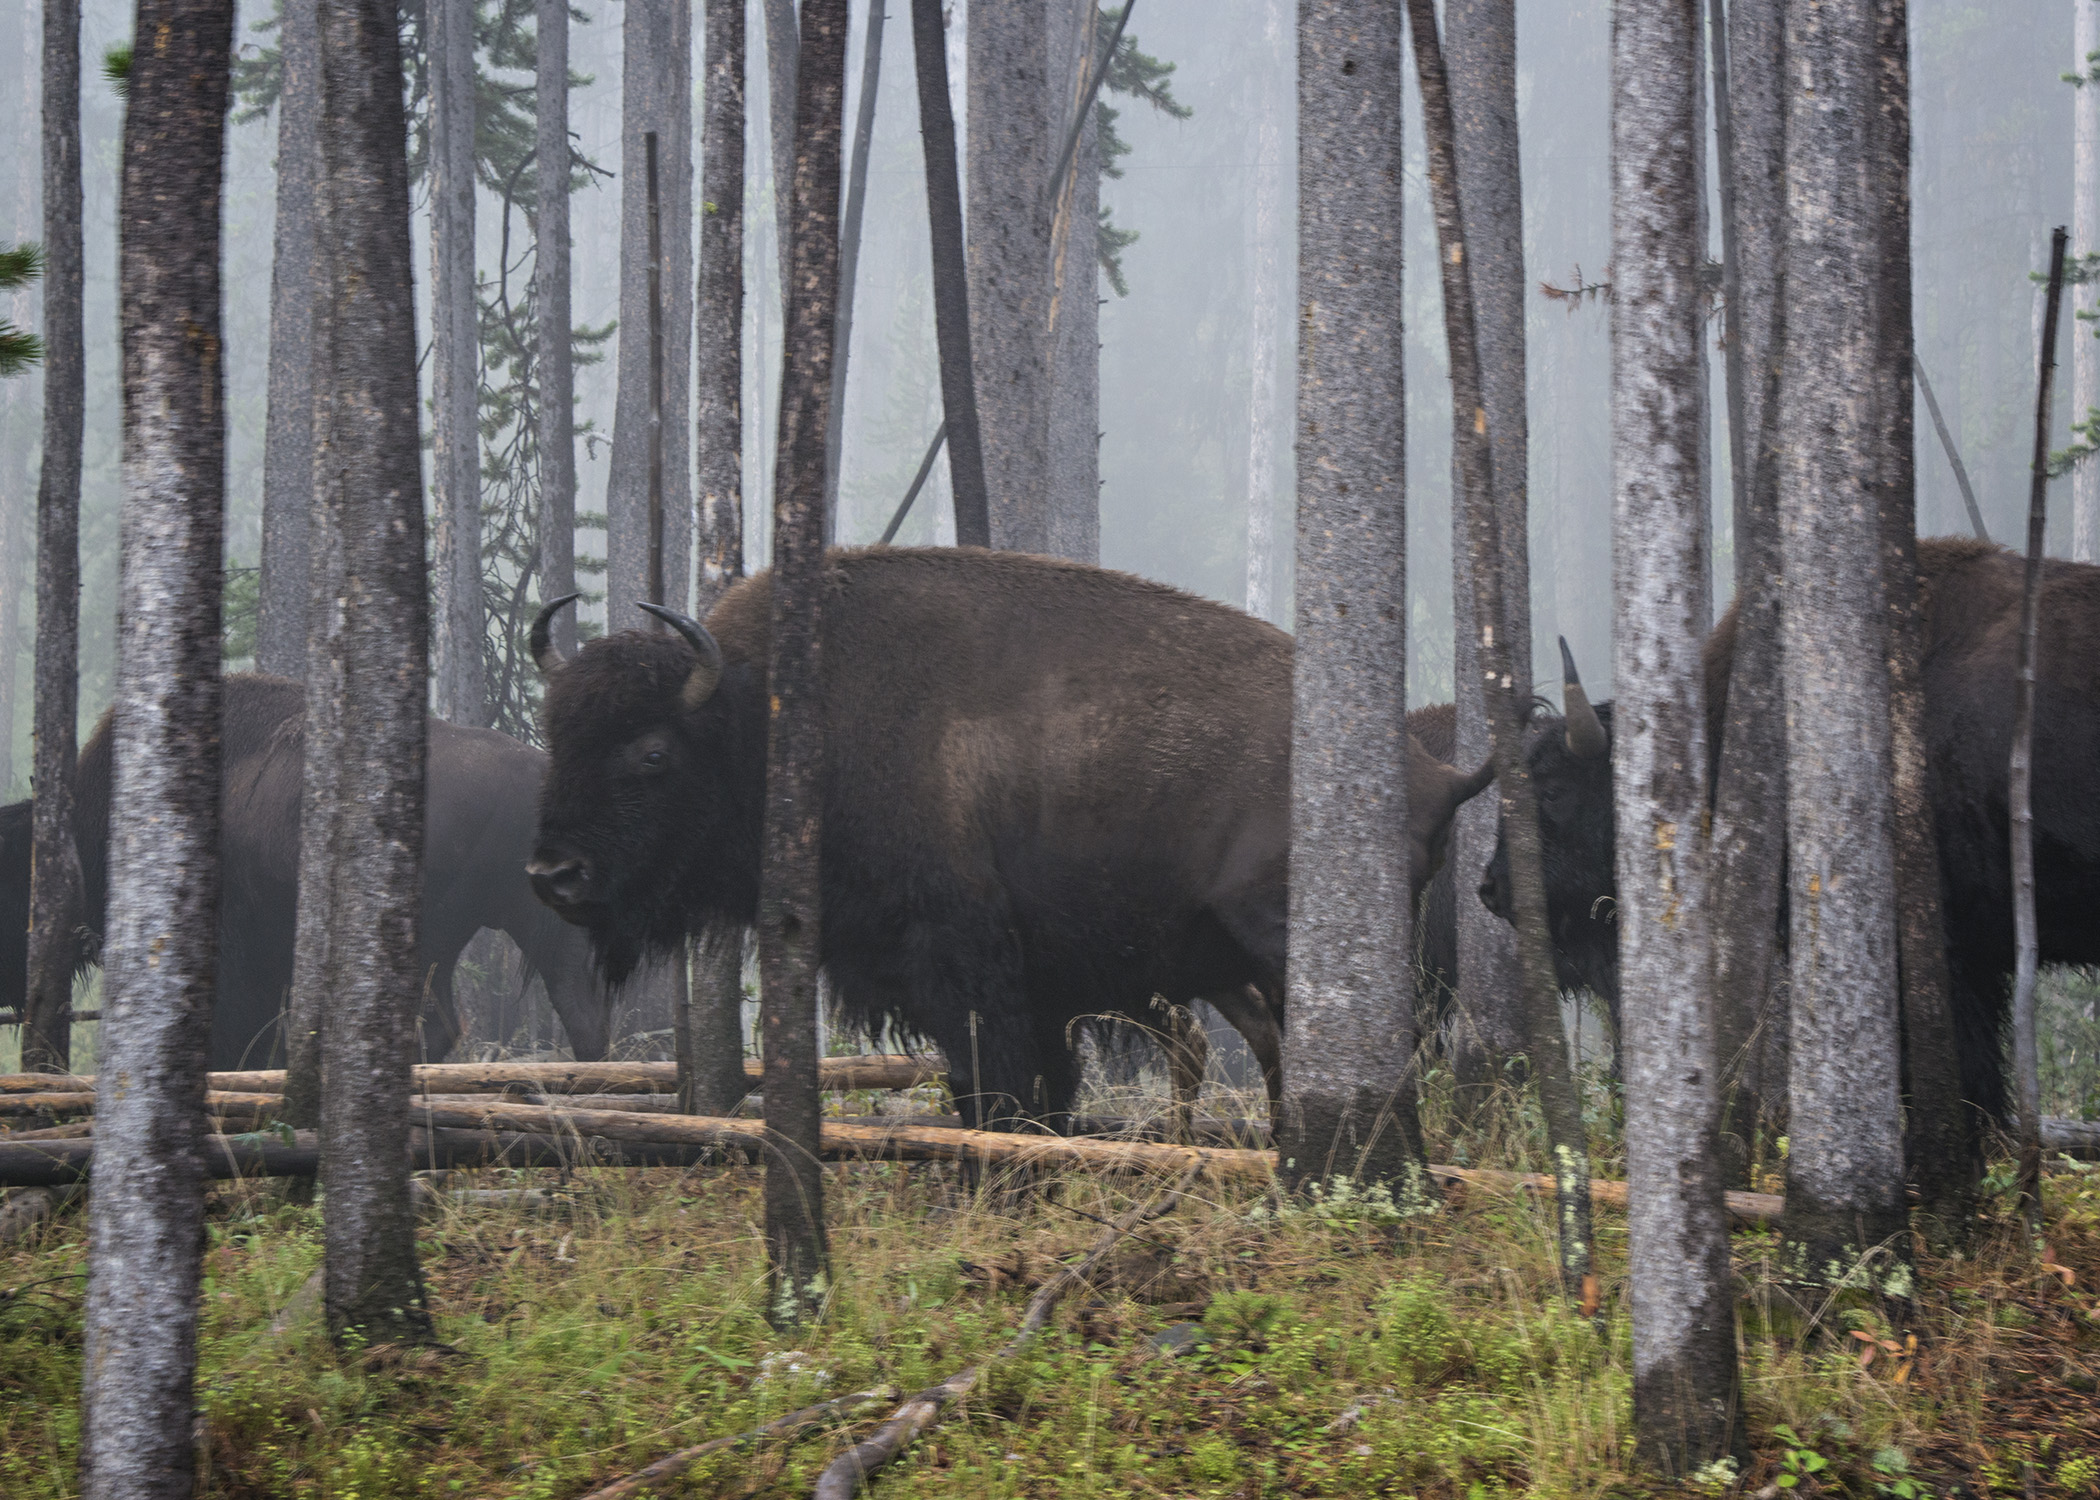 Bison look angrily through the trees on a late summer morning in Yellowstone. Overnight snow put them in a foul mood.